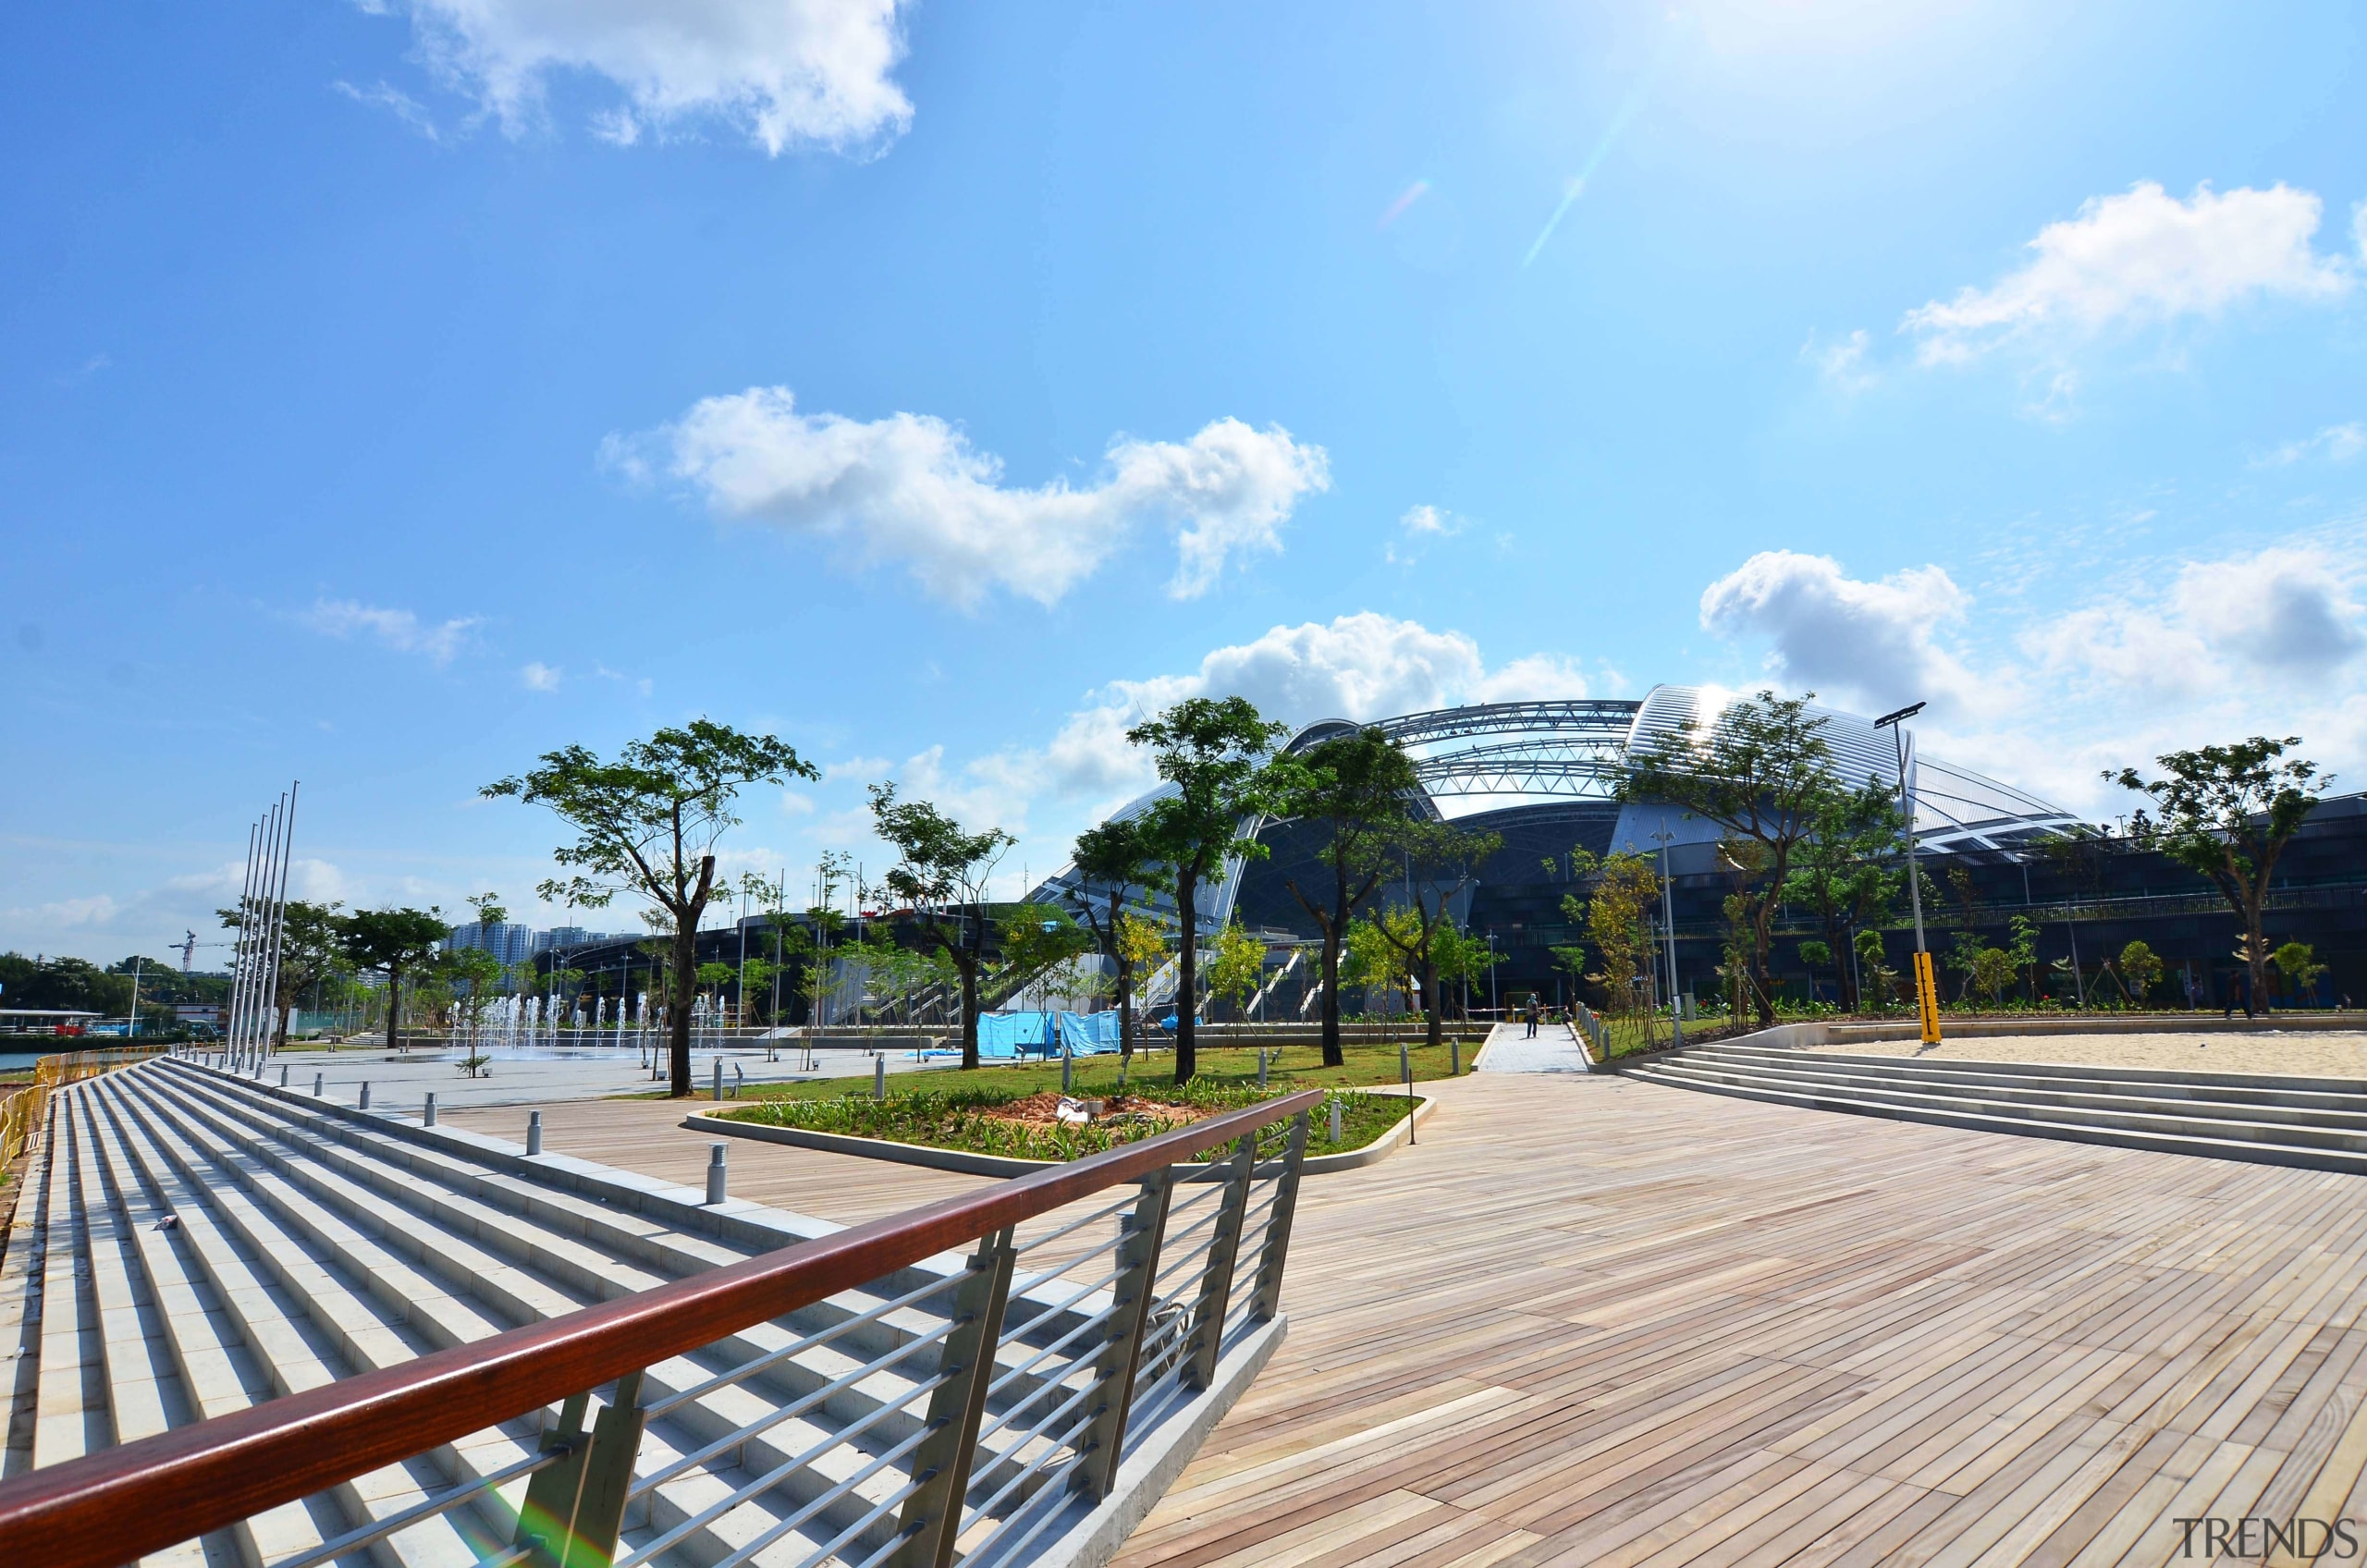 Public amenities at the Singapore Sports Hub include area, boardwalk, cloud, estate, leisure, real estate, recreation, residential area, sky, tree, walkway, teal